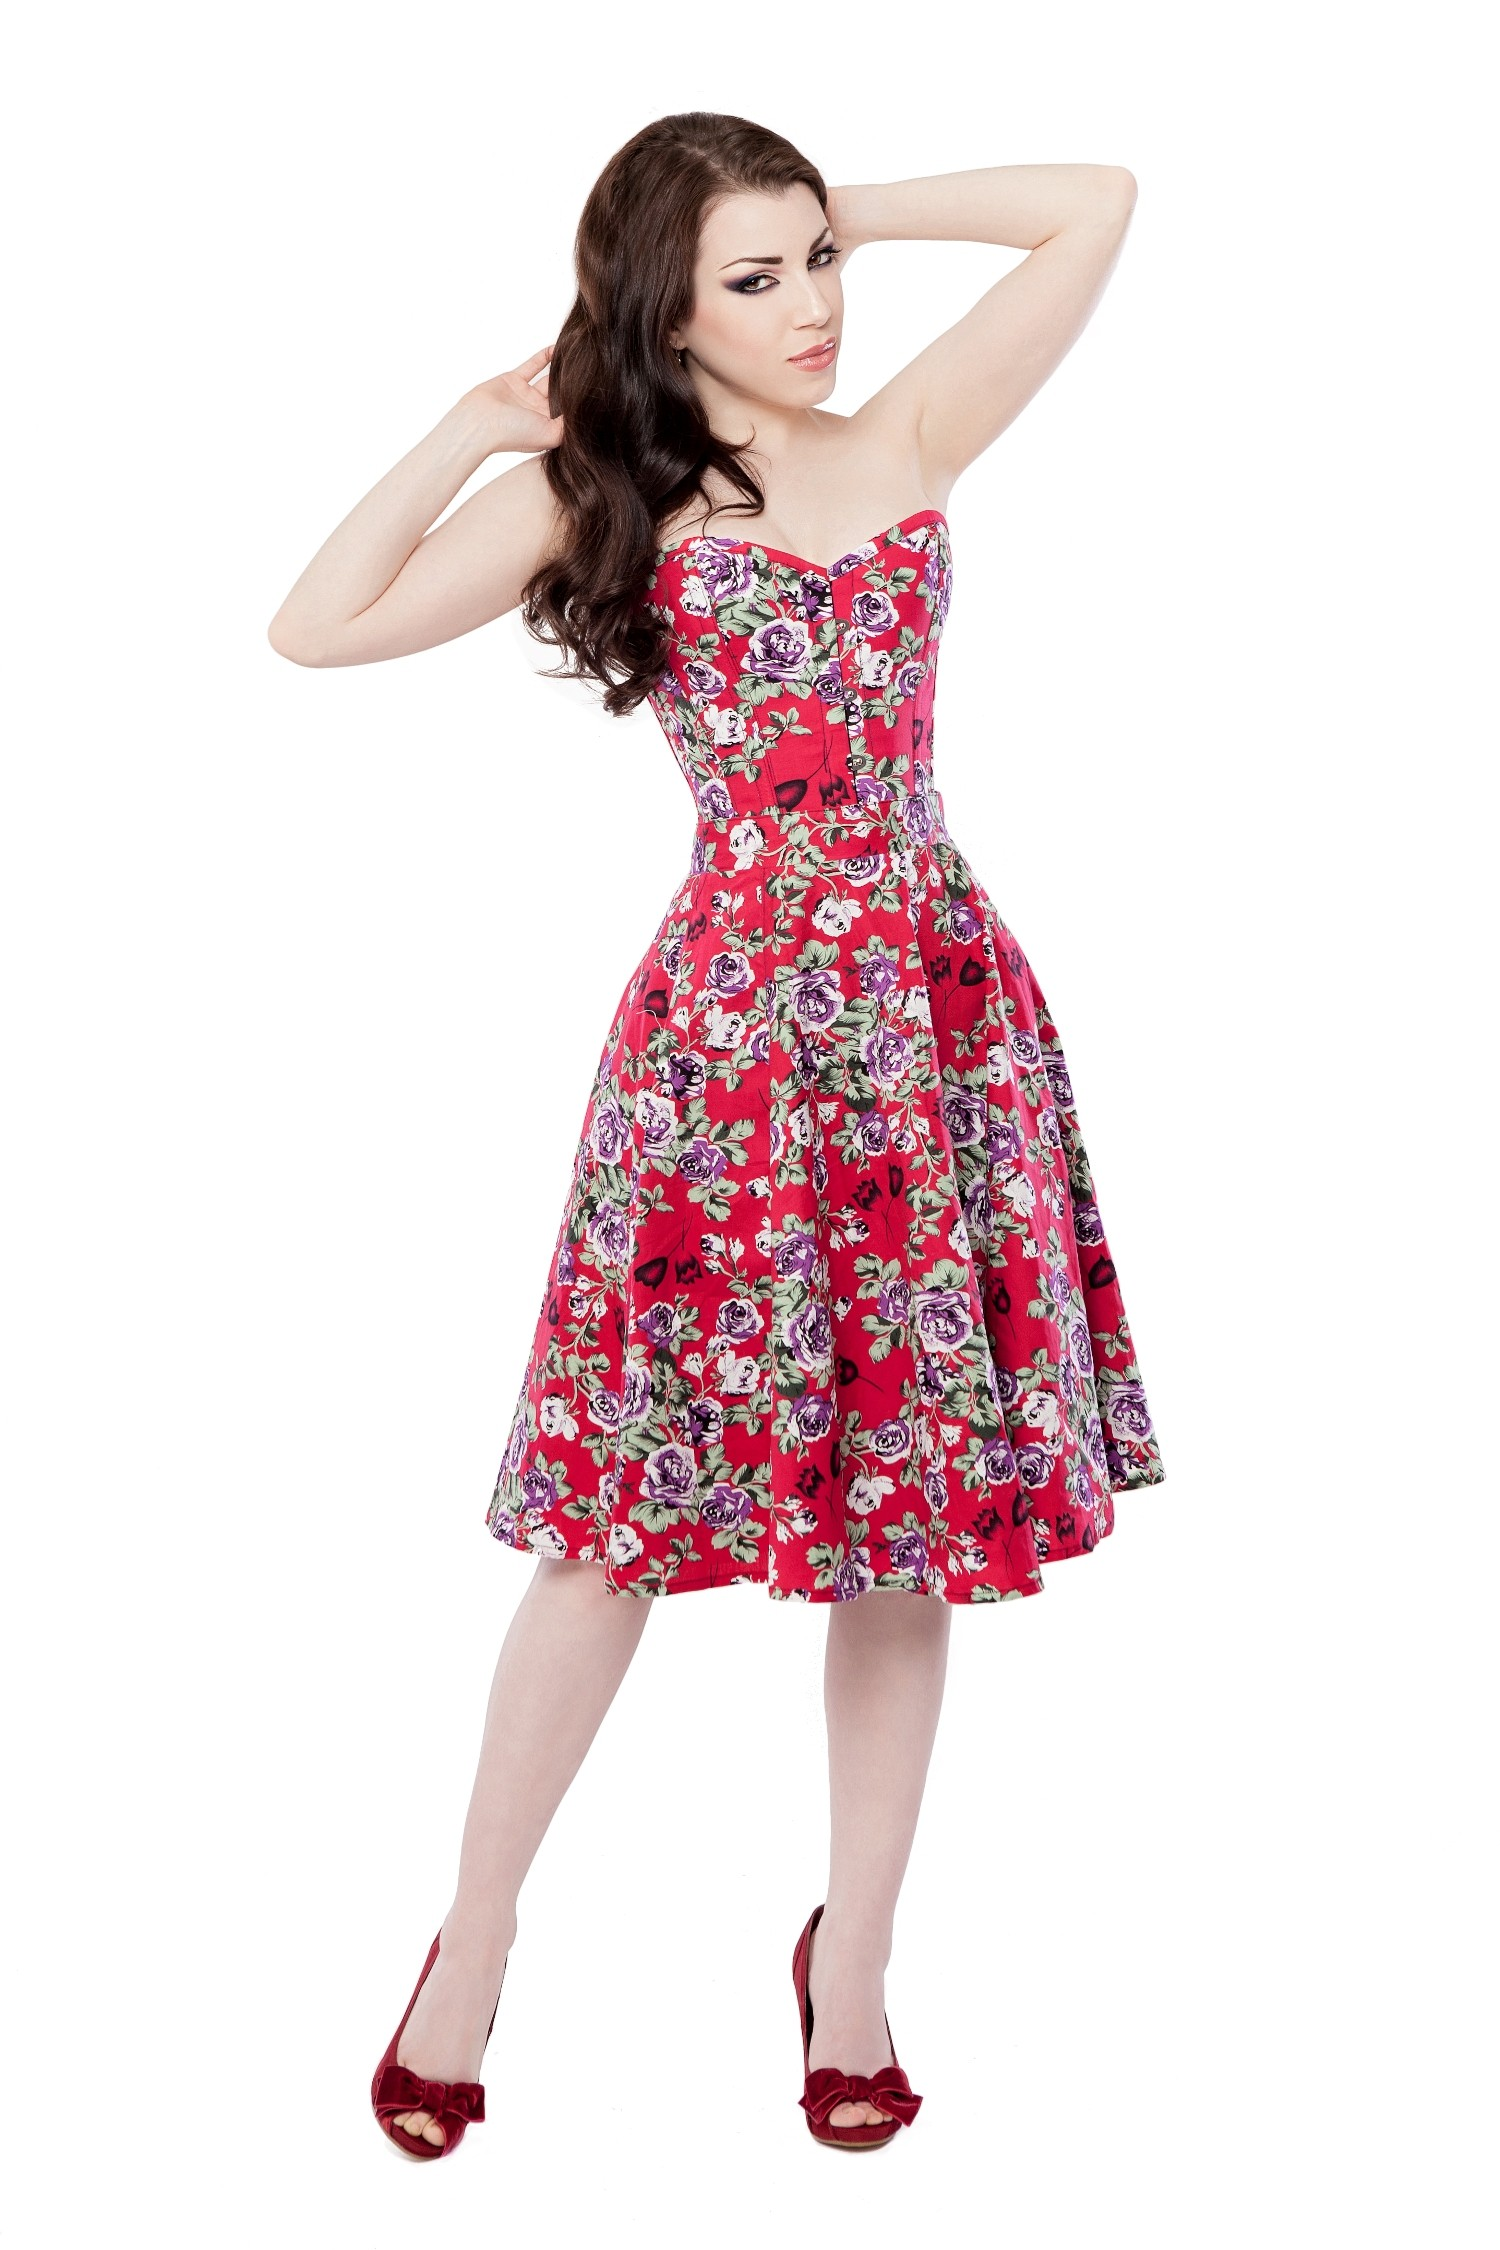 Playgirl Red Floral Circle Skirt